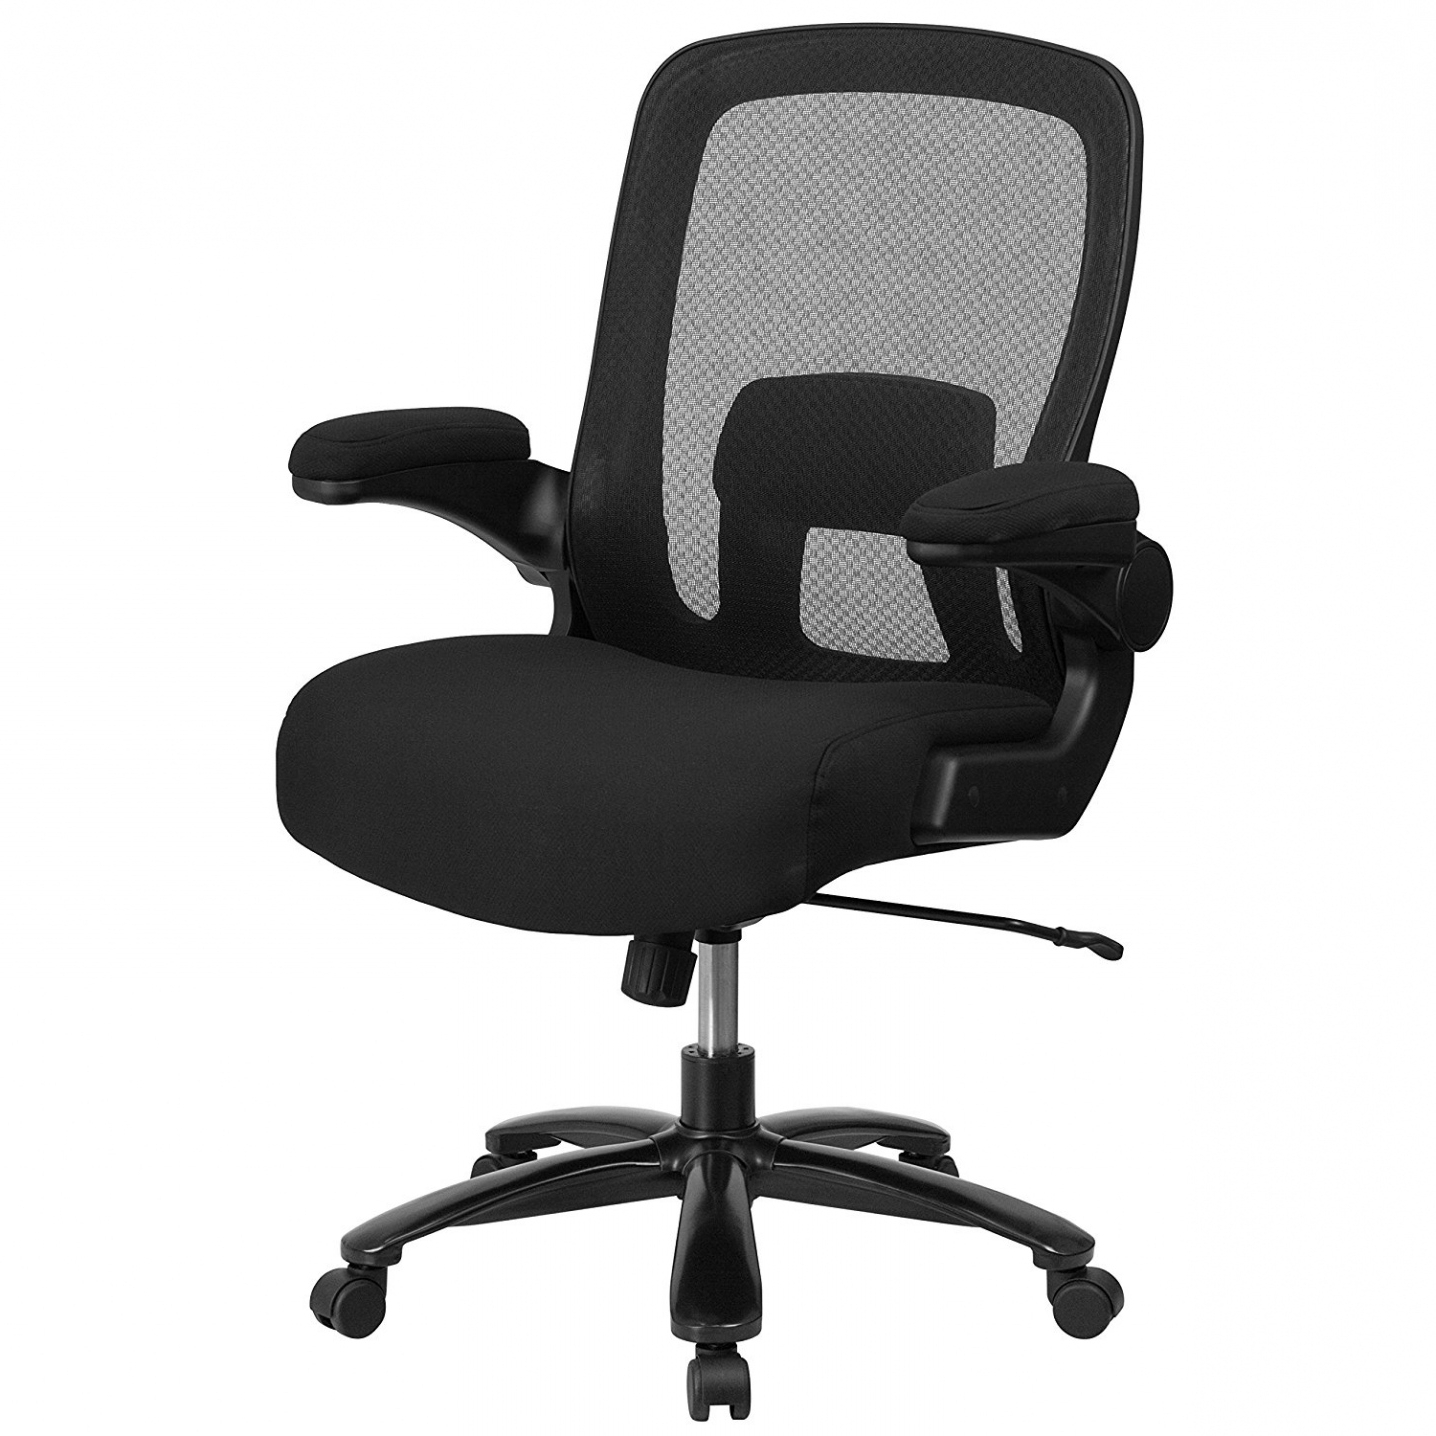 Office Chair With Adjustable Lumbar Support – Organization Ideas Intended For Current Executive Office Chairs With Adjustable Lumbar Support (View 10 of 20)